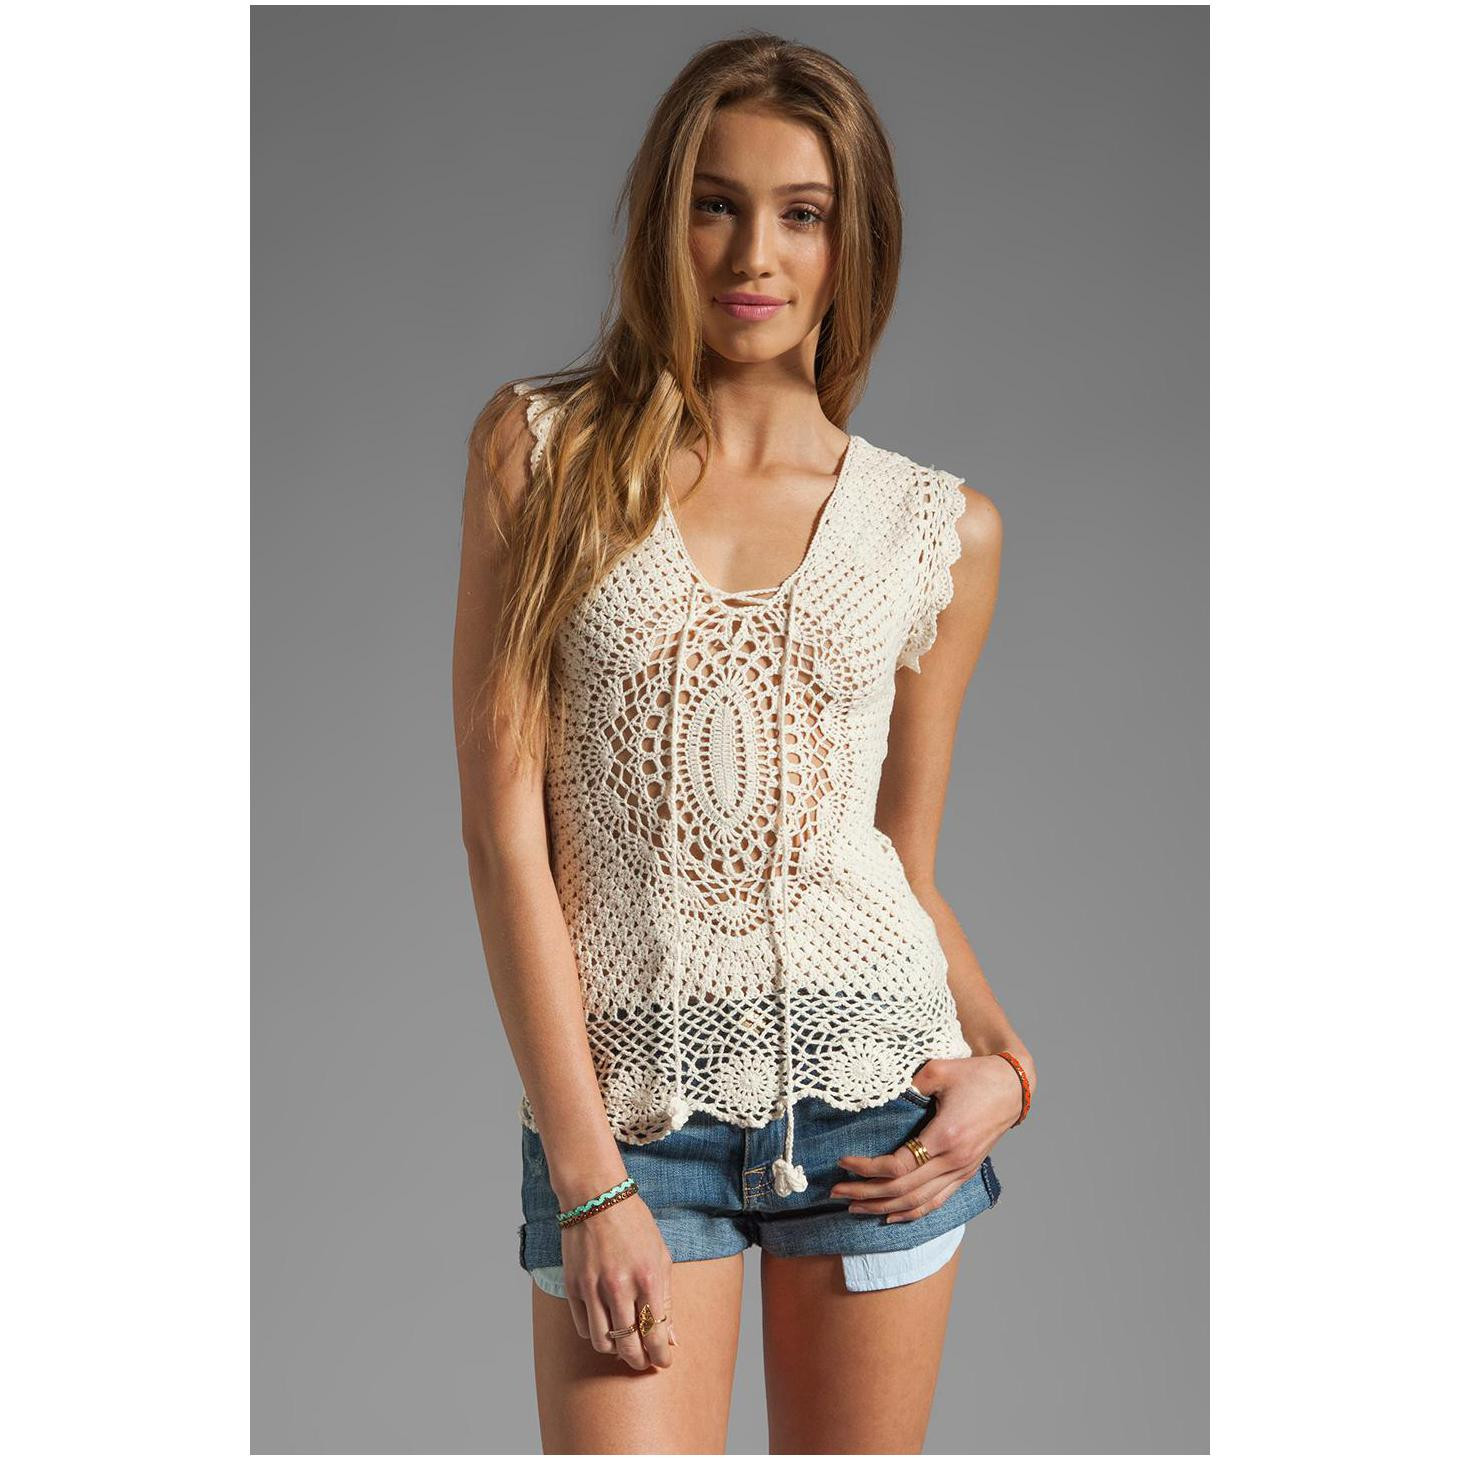 Crochet Outfits Elegant Easy Style Crochet top for Fashion La S – Designers Of Great 42 Ideas Crochet Outfits